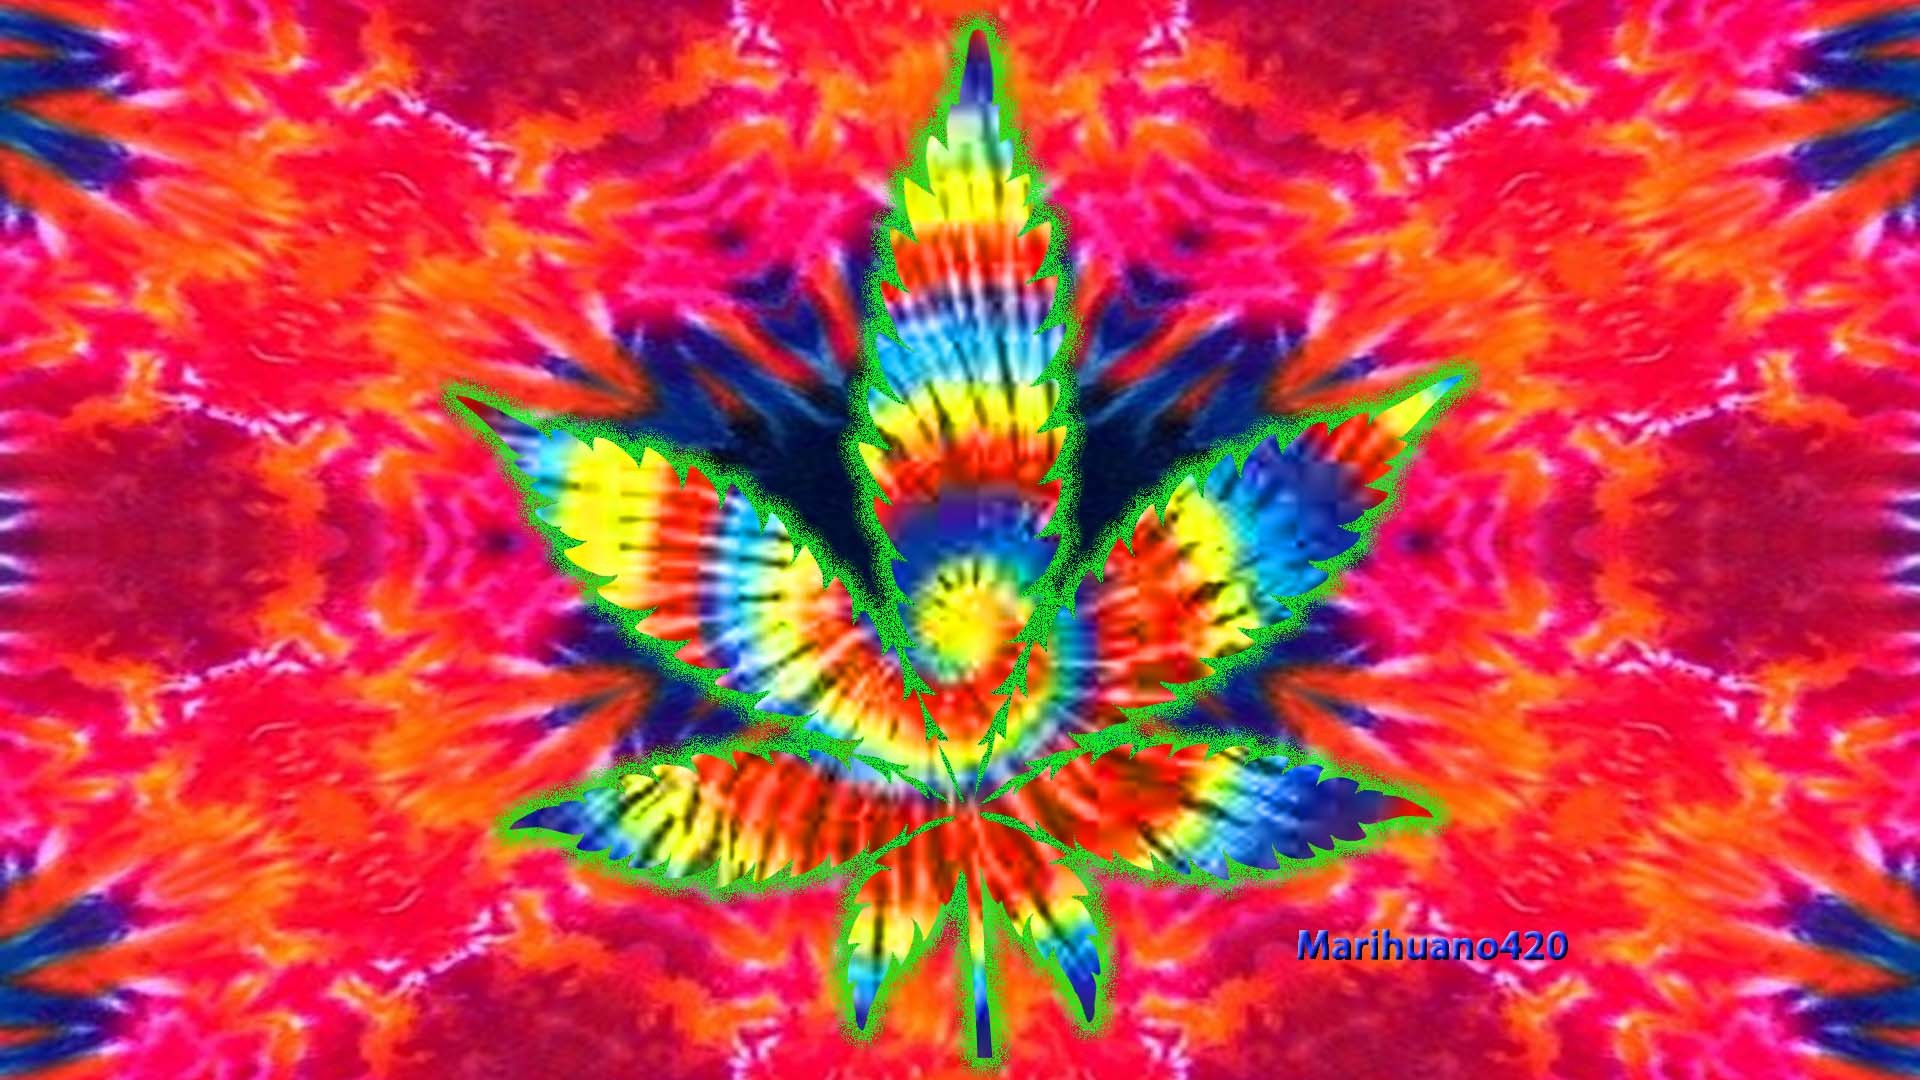 Trippy marijuana background wallpapertag - Trippy backgrounds tumblr ...